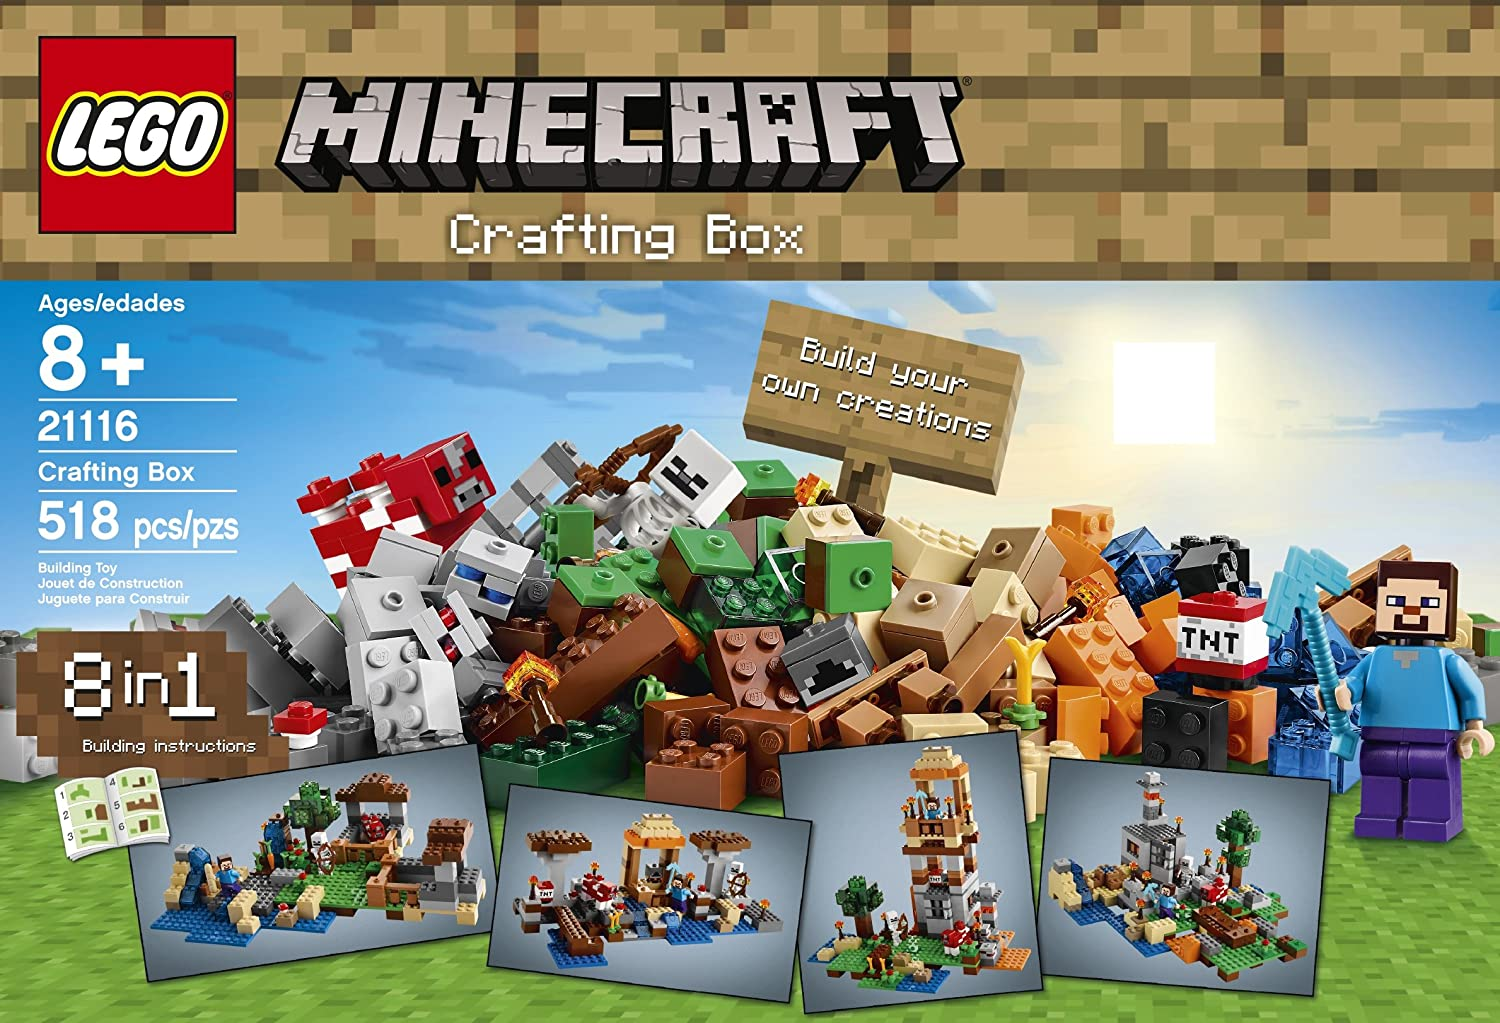 Crafting Box